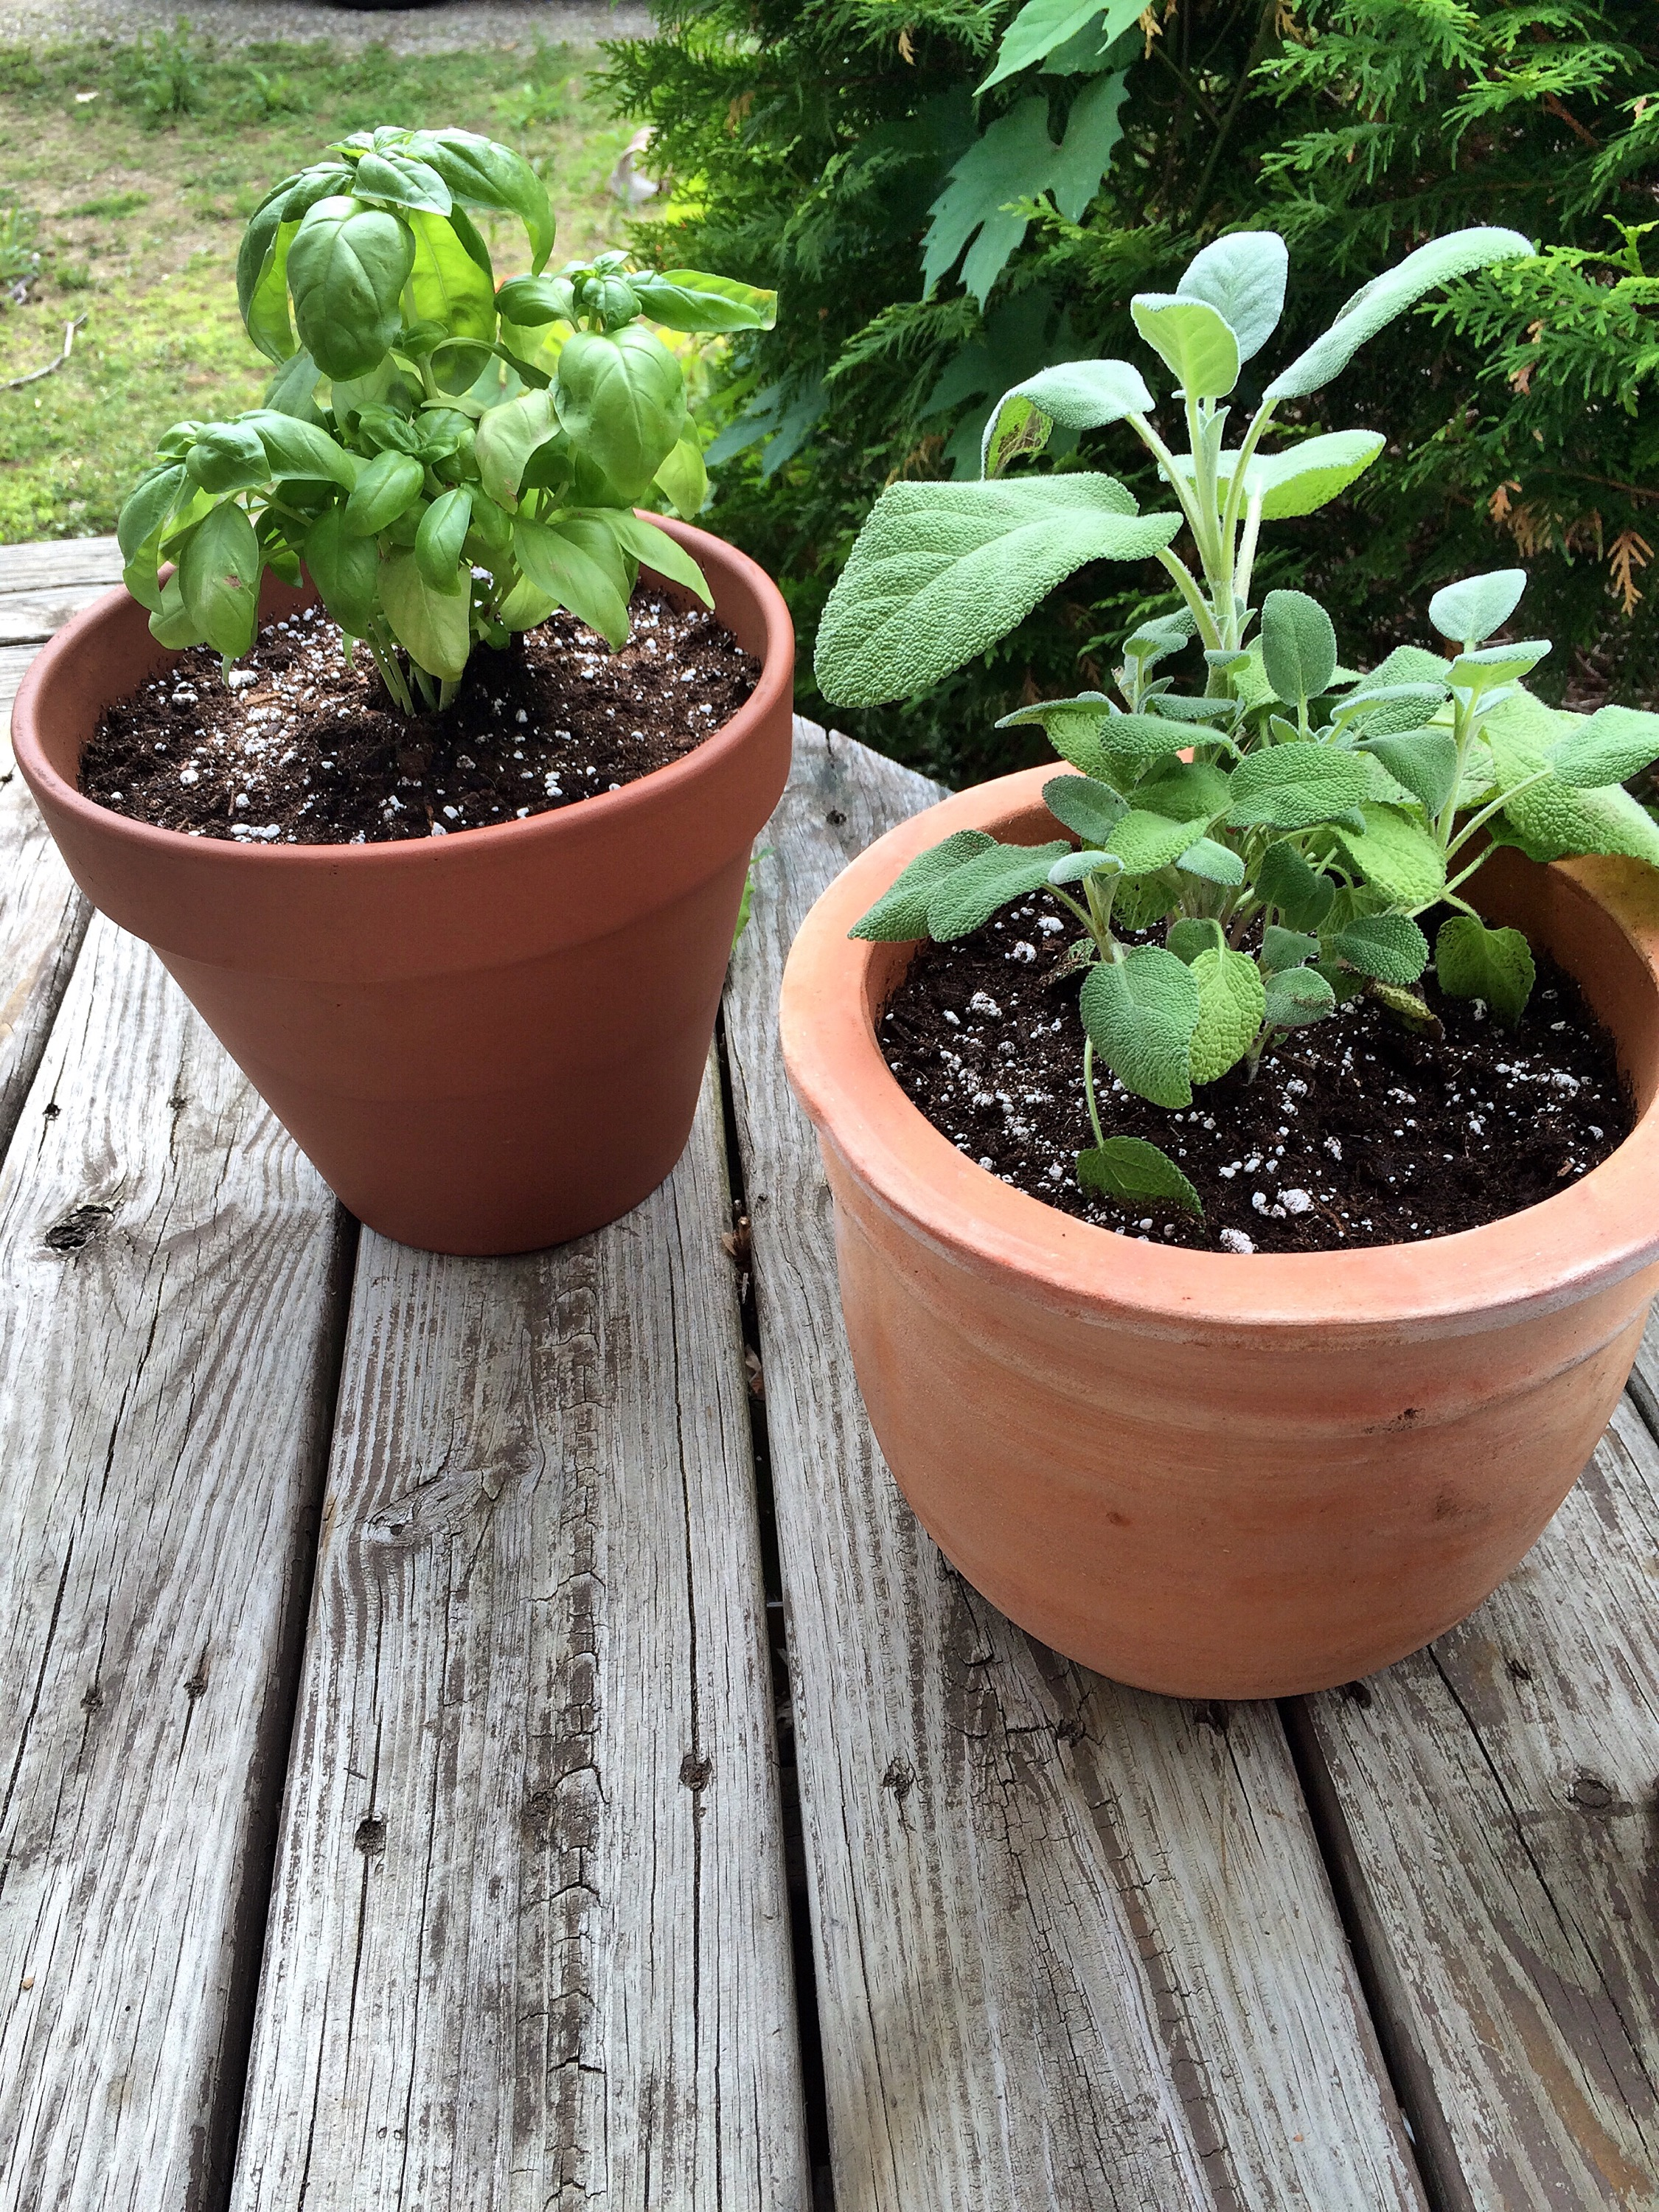 basil and sage plants